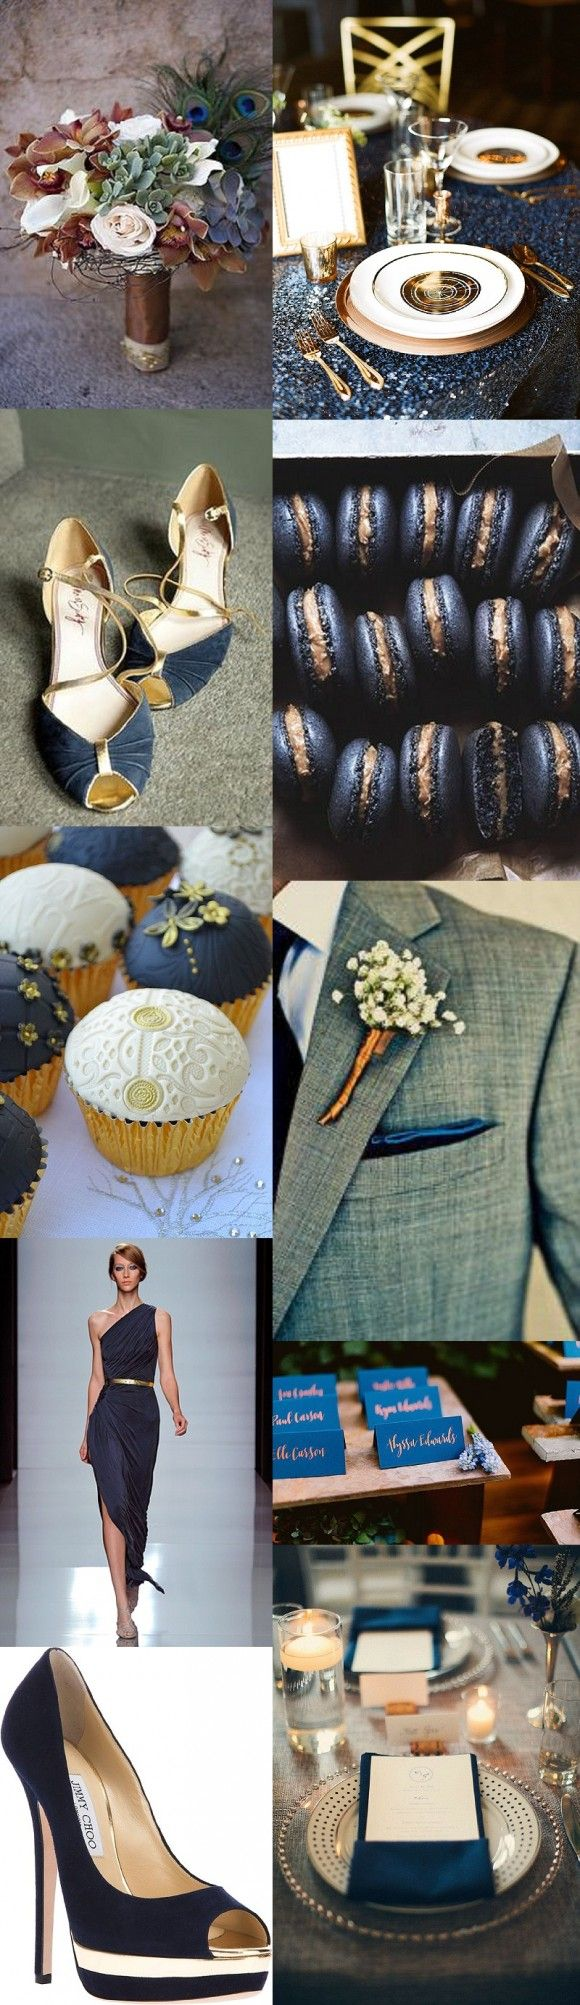 I know this is a wedding inspiration page, but I love the color combo for some other parties... perhaps a friendsgiving?